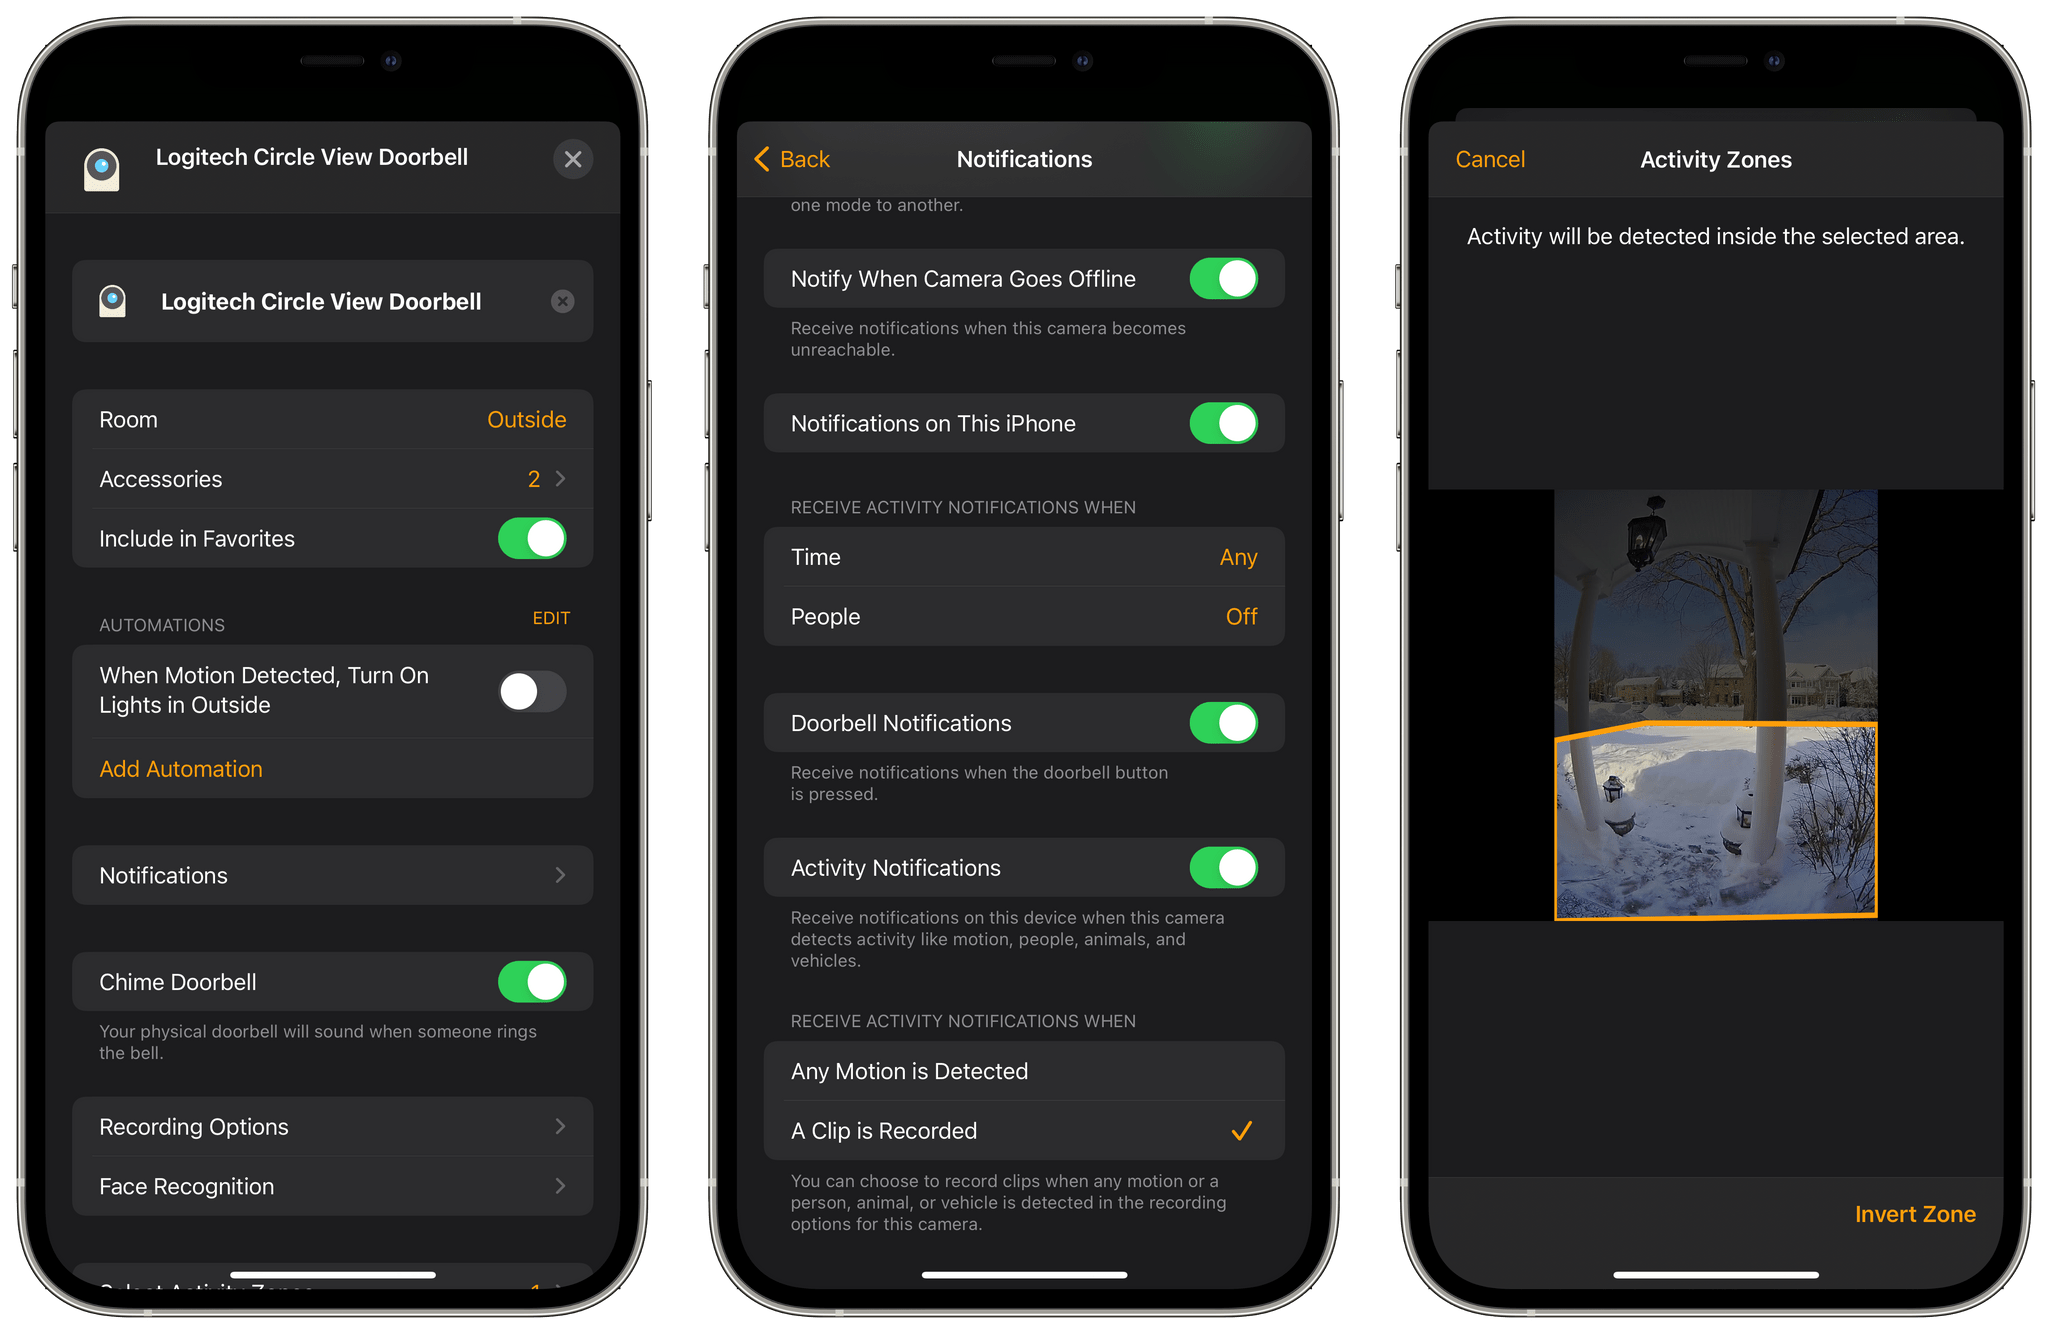 HomeKit Secure Video got off to a rocky start, but it has been working well for me since iOS 14 and includes lots of customization options for the Circle View Doorbell.